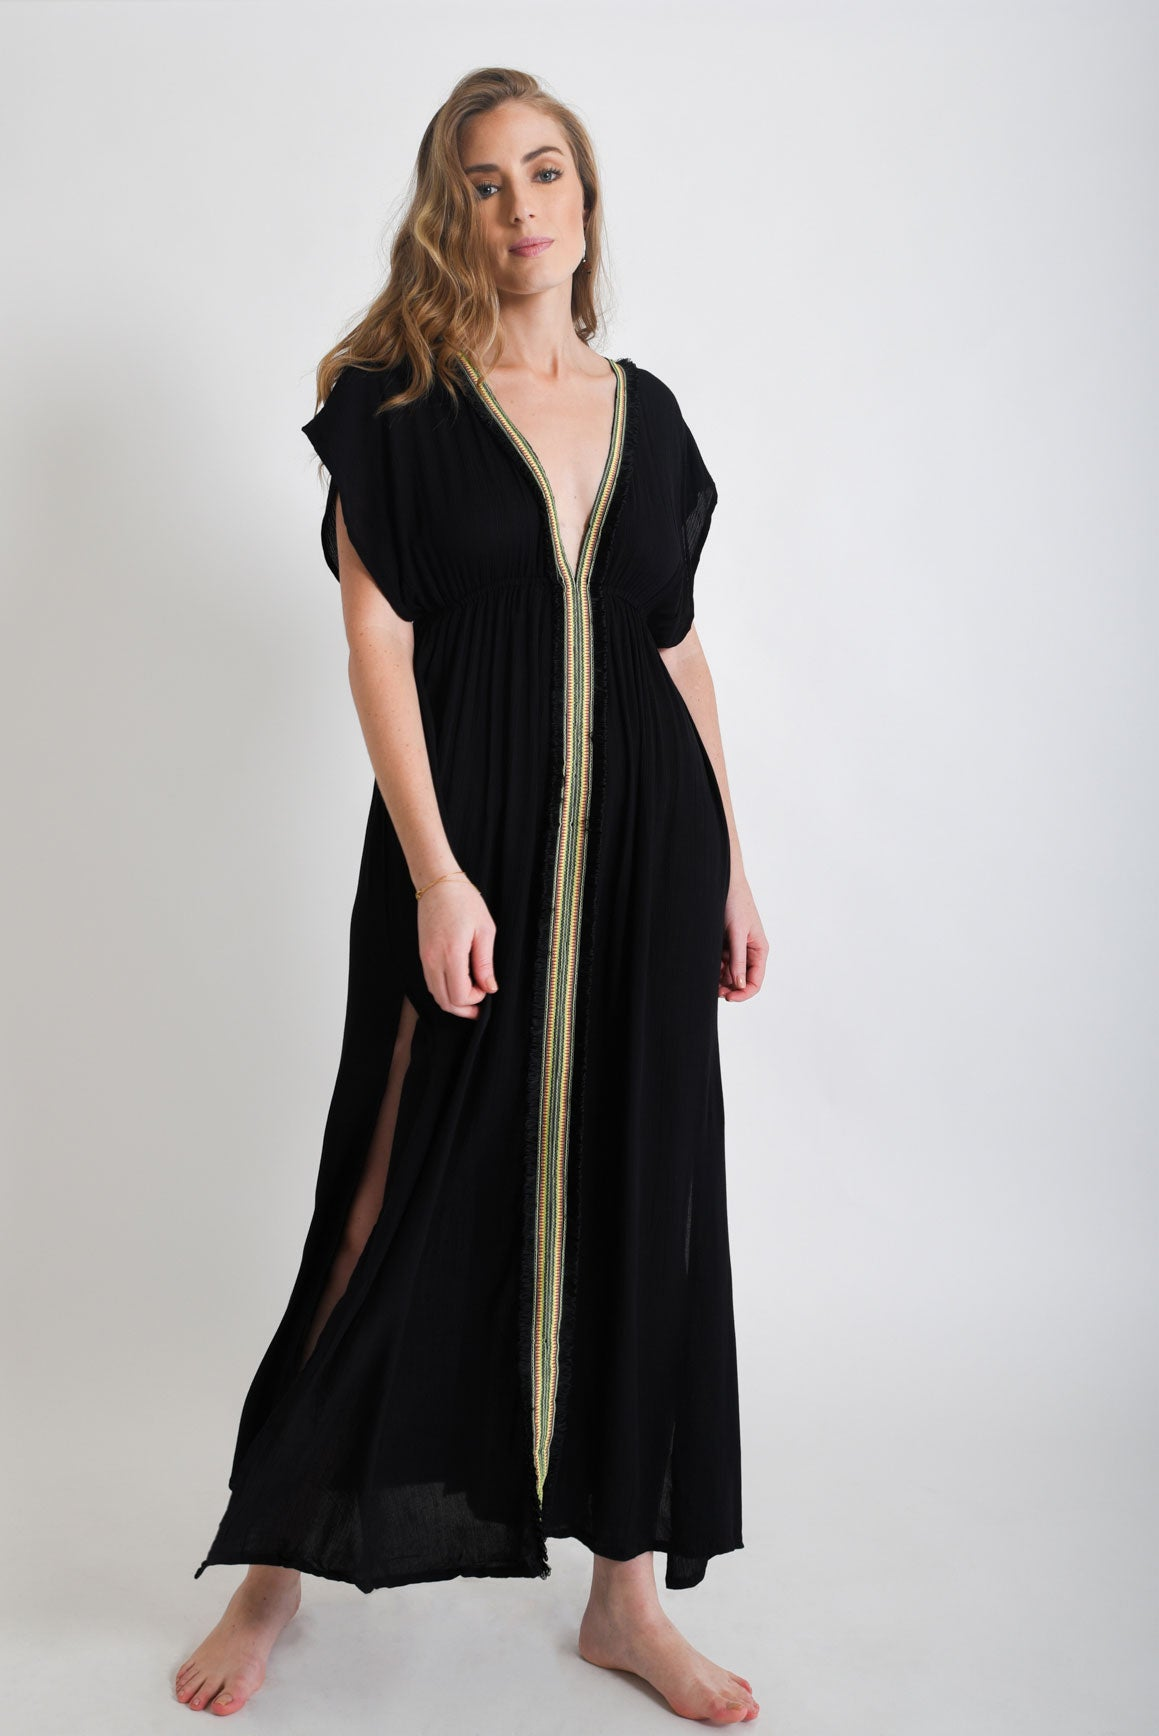 Shop Women's Black Maxi Dress| Aanya